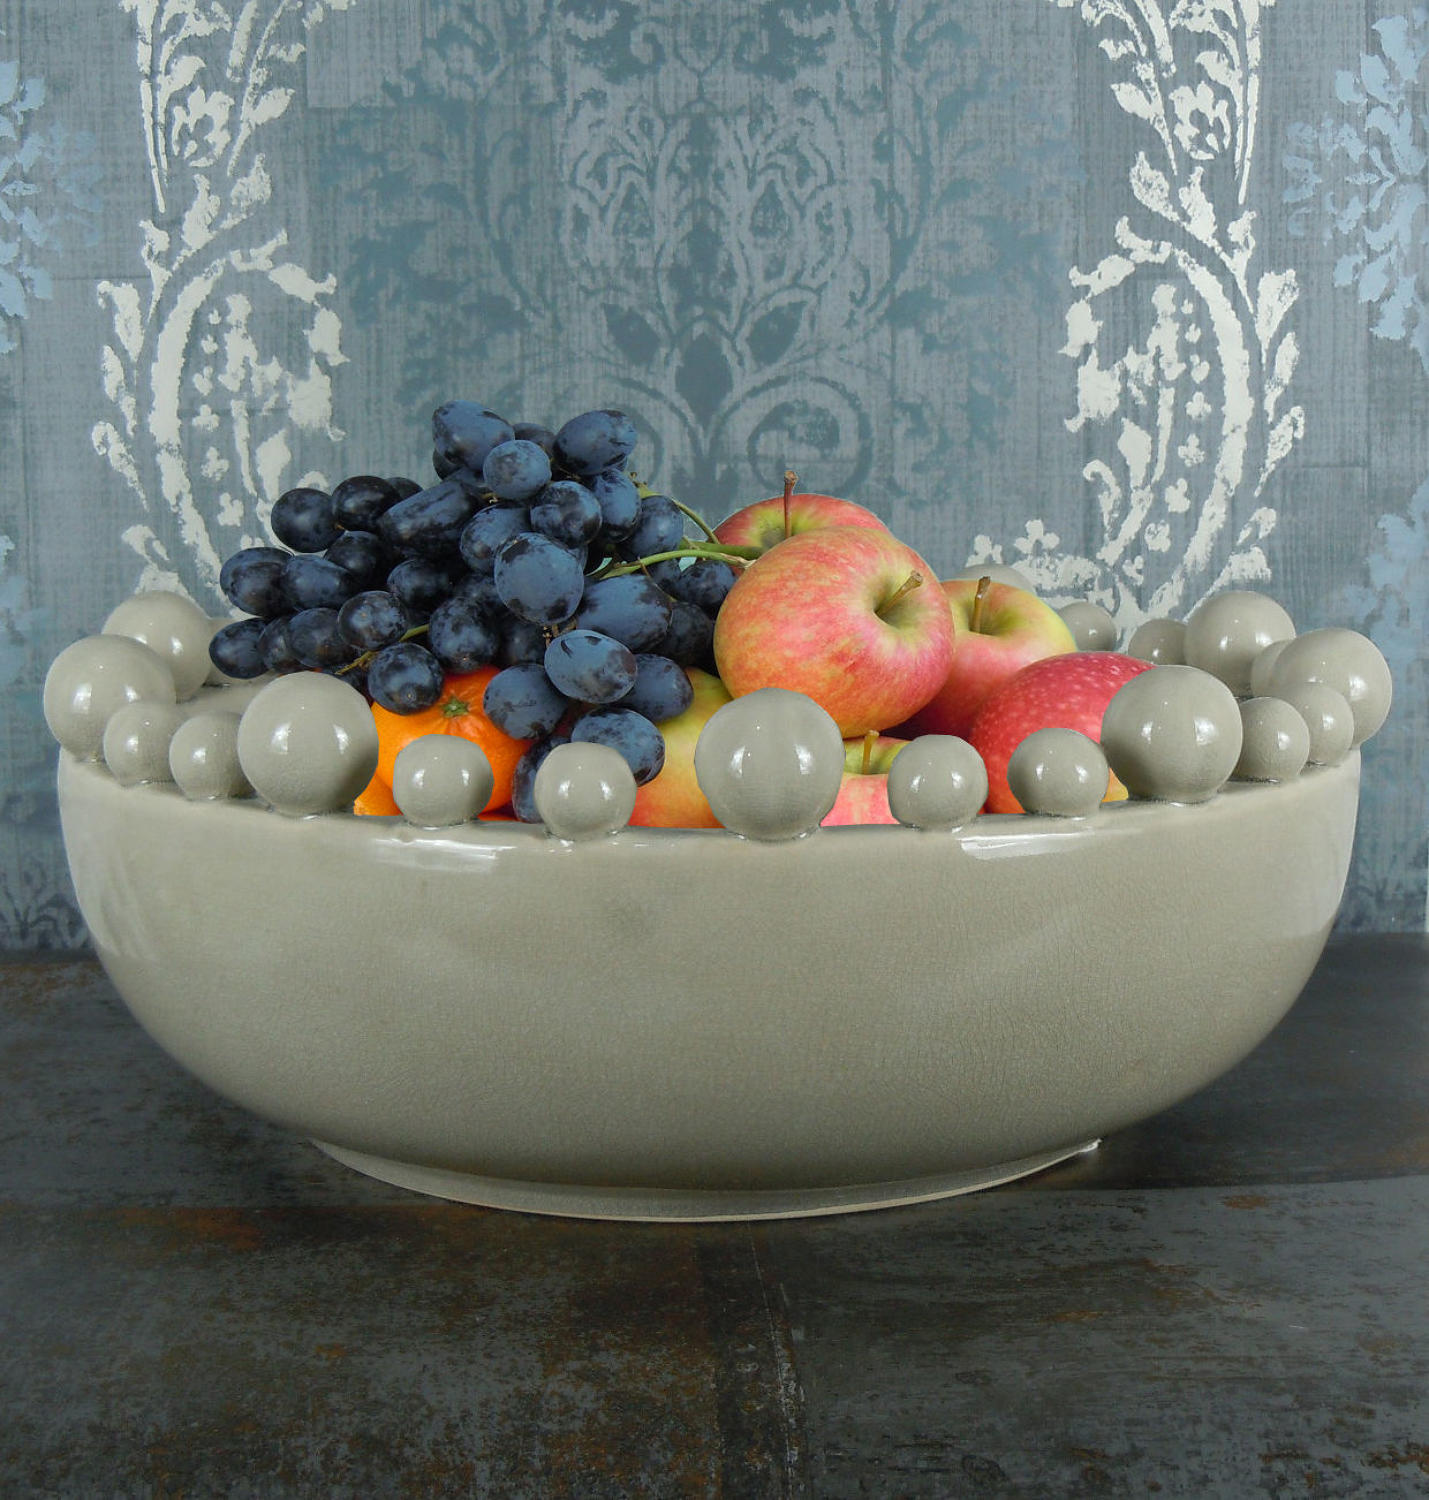 Cream ceramic bowl with balls on the rim